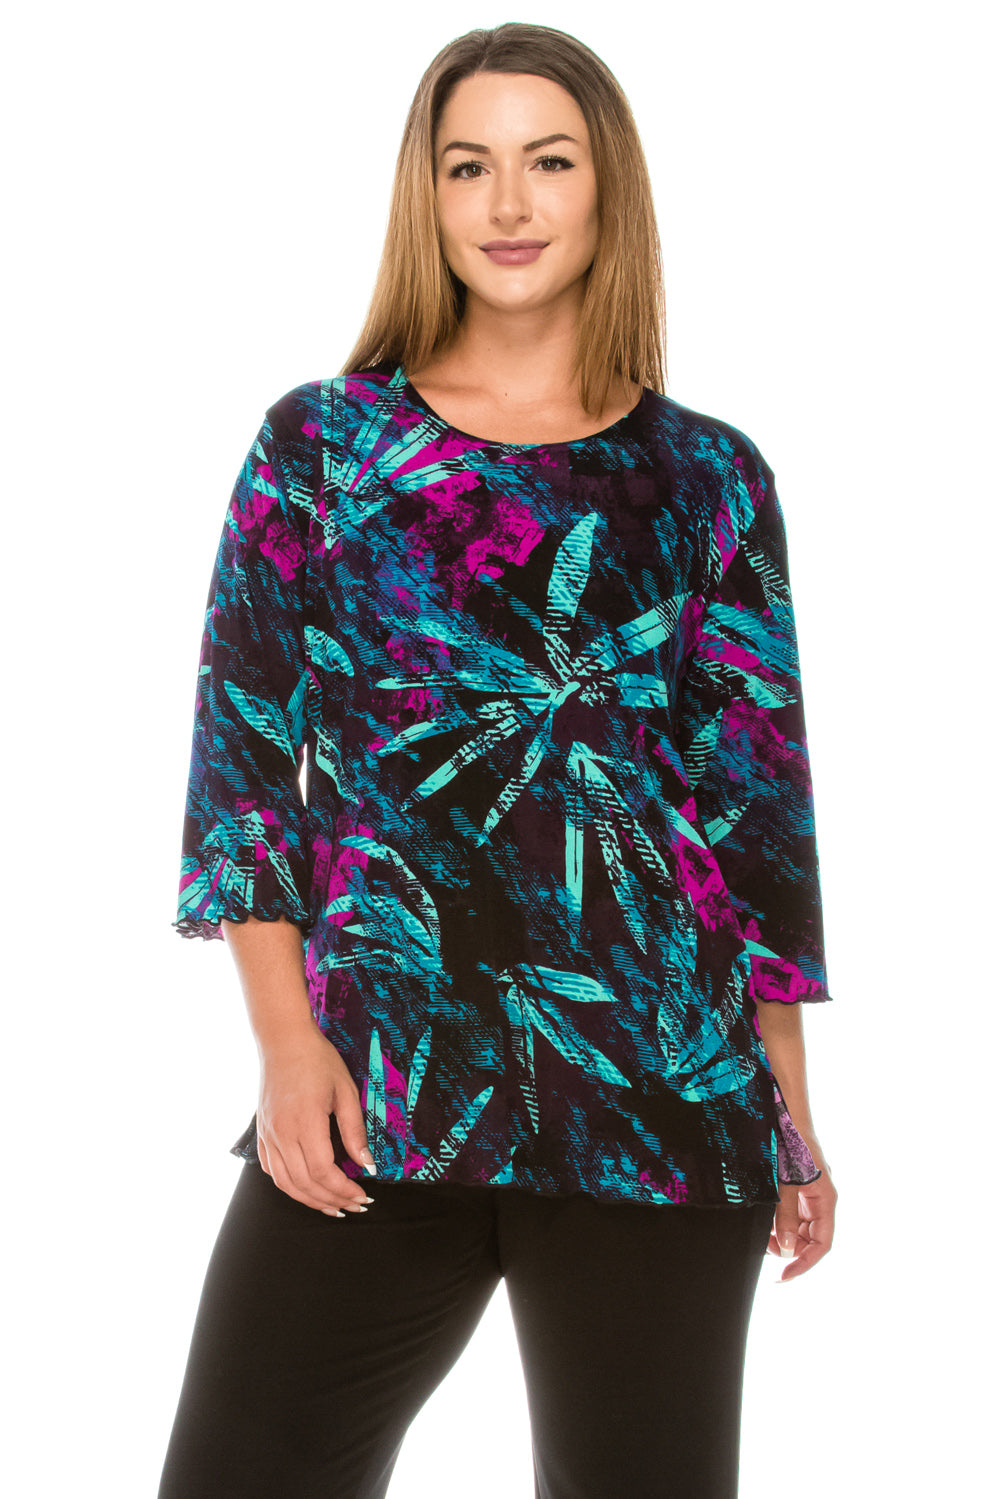 Jostar Women's Stretchy Merrow Top 3/4 Sleeve Print Plus, 158BN-QXP-W101 - Jostar Online